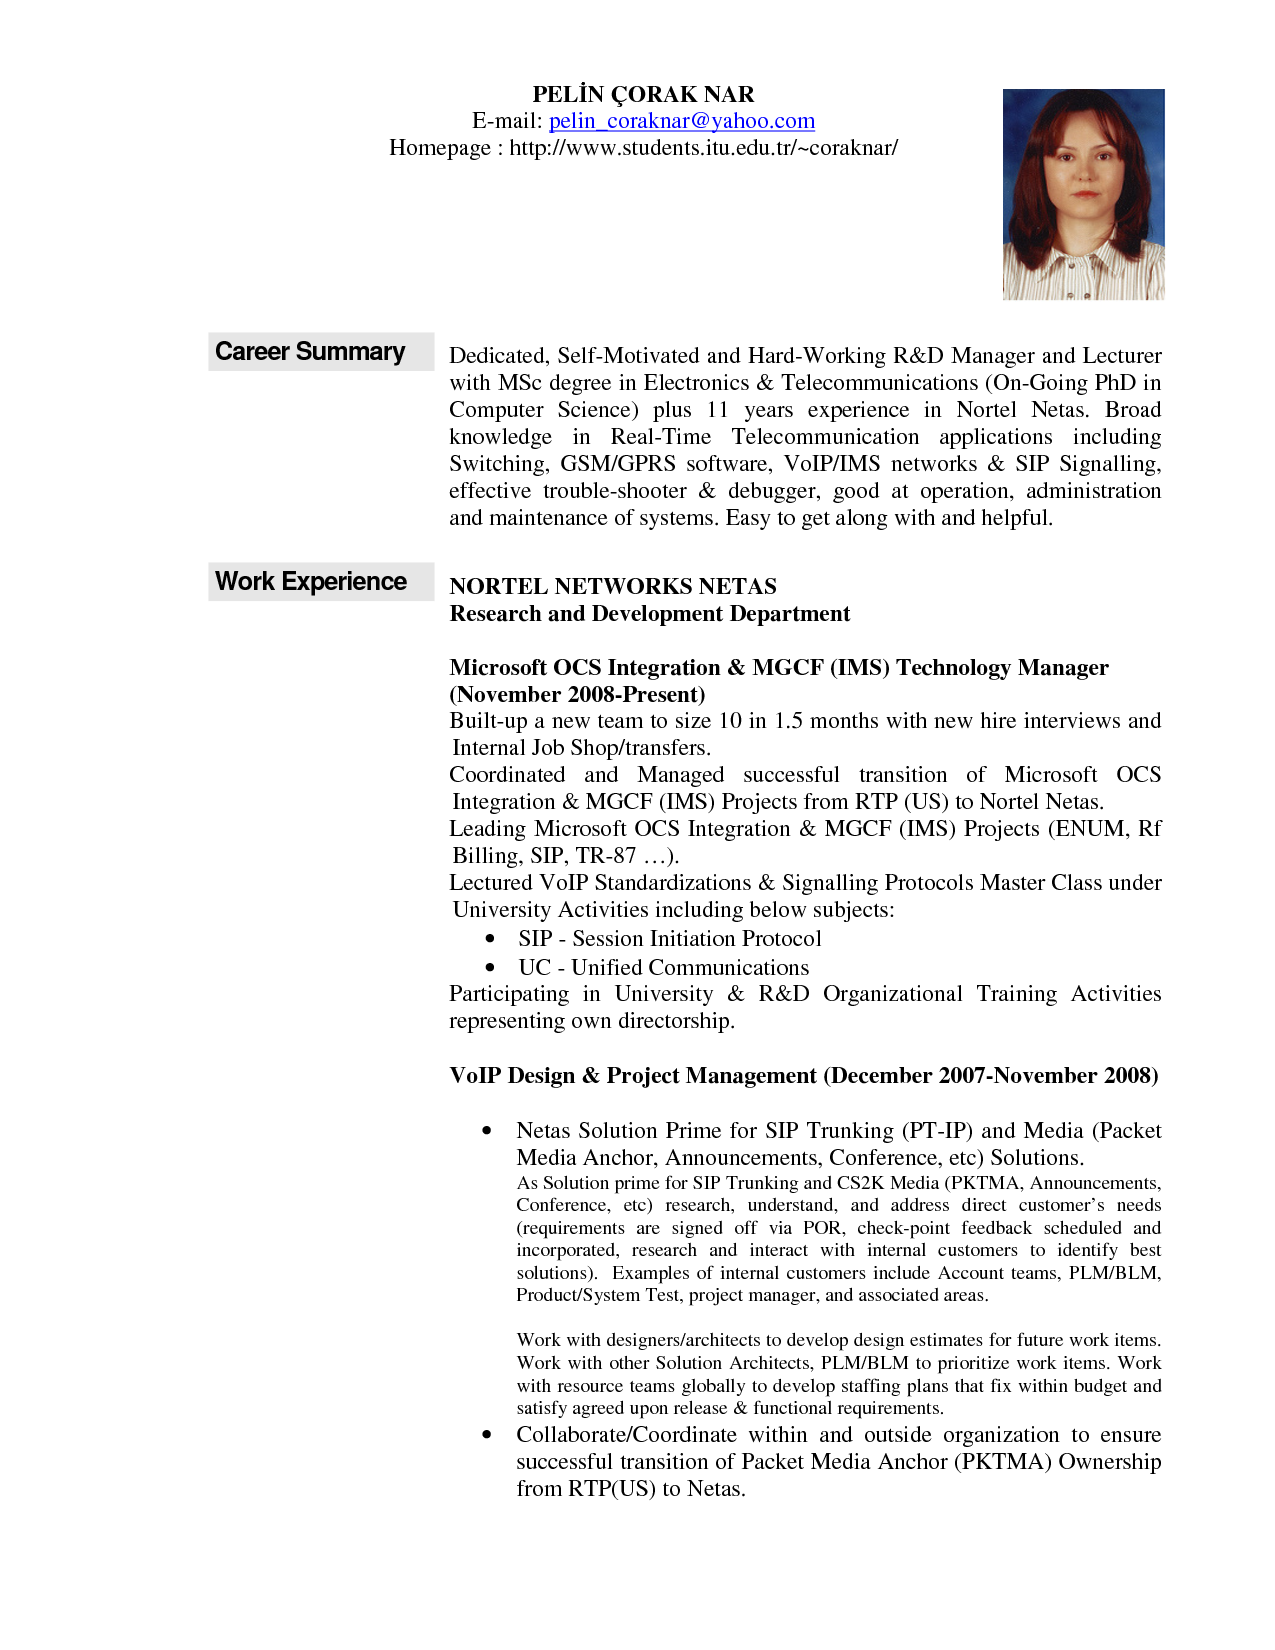 Elegant Professional Summary Resume Examples For Template Profile